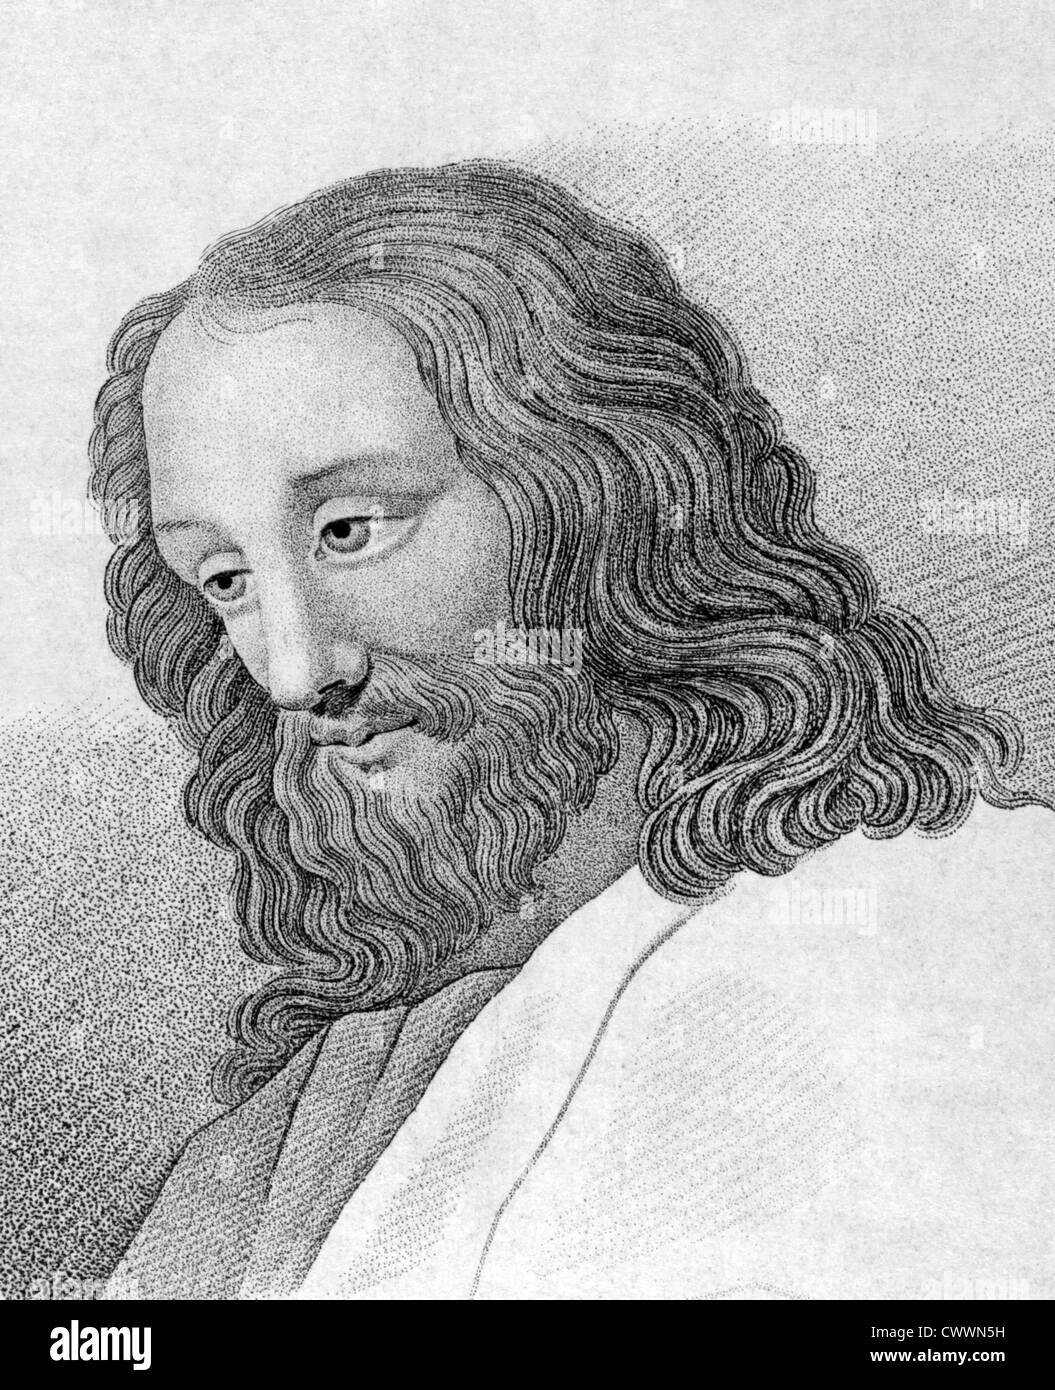 Jesus Christ on engraving from 1859. Engraved by unknown artist and published in Meyers Konversations-Lexikon, Germany,1859. - Stock Image